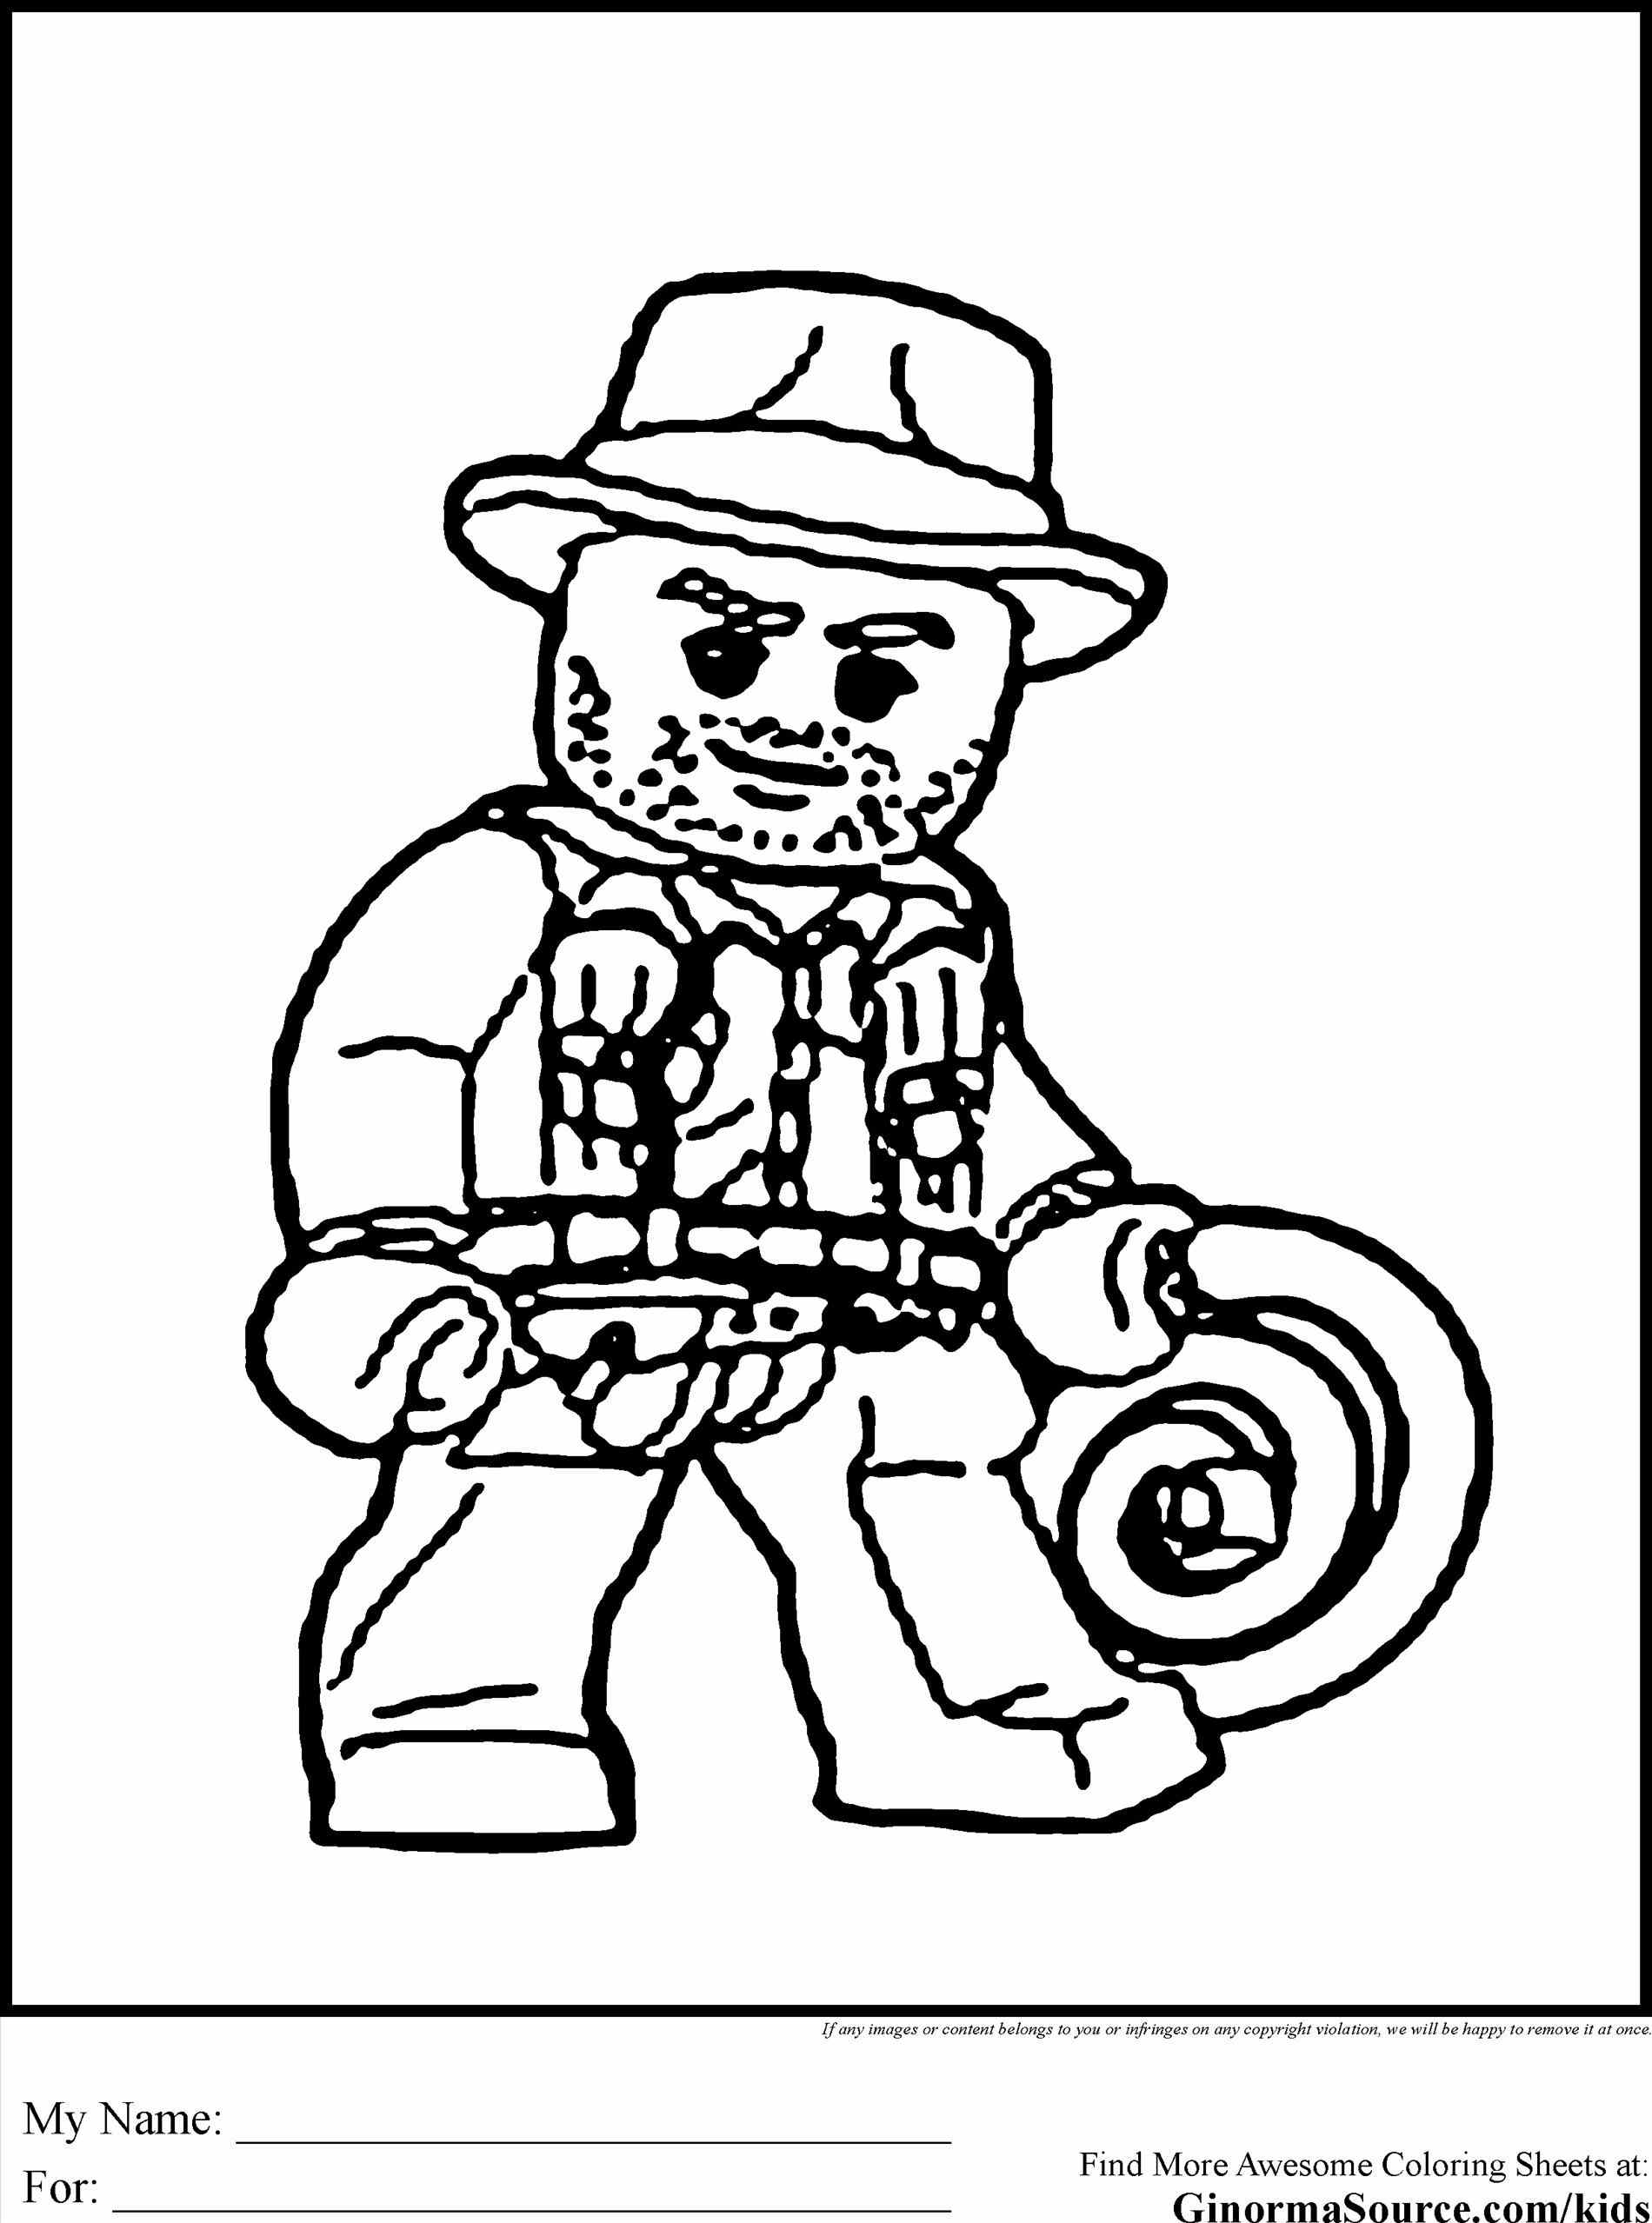 lego indiana jones coloring pages indiana jones lego pages coloring pages pages coloring jones lego indiana